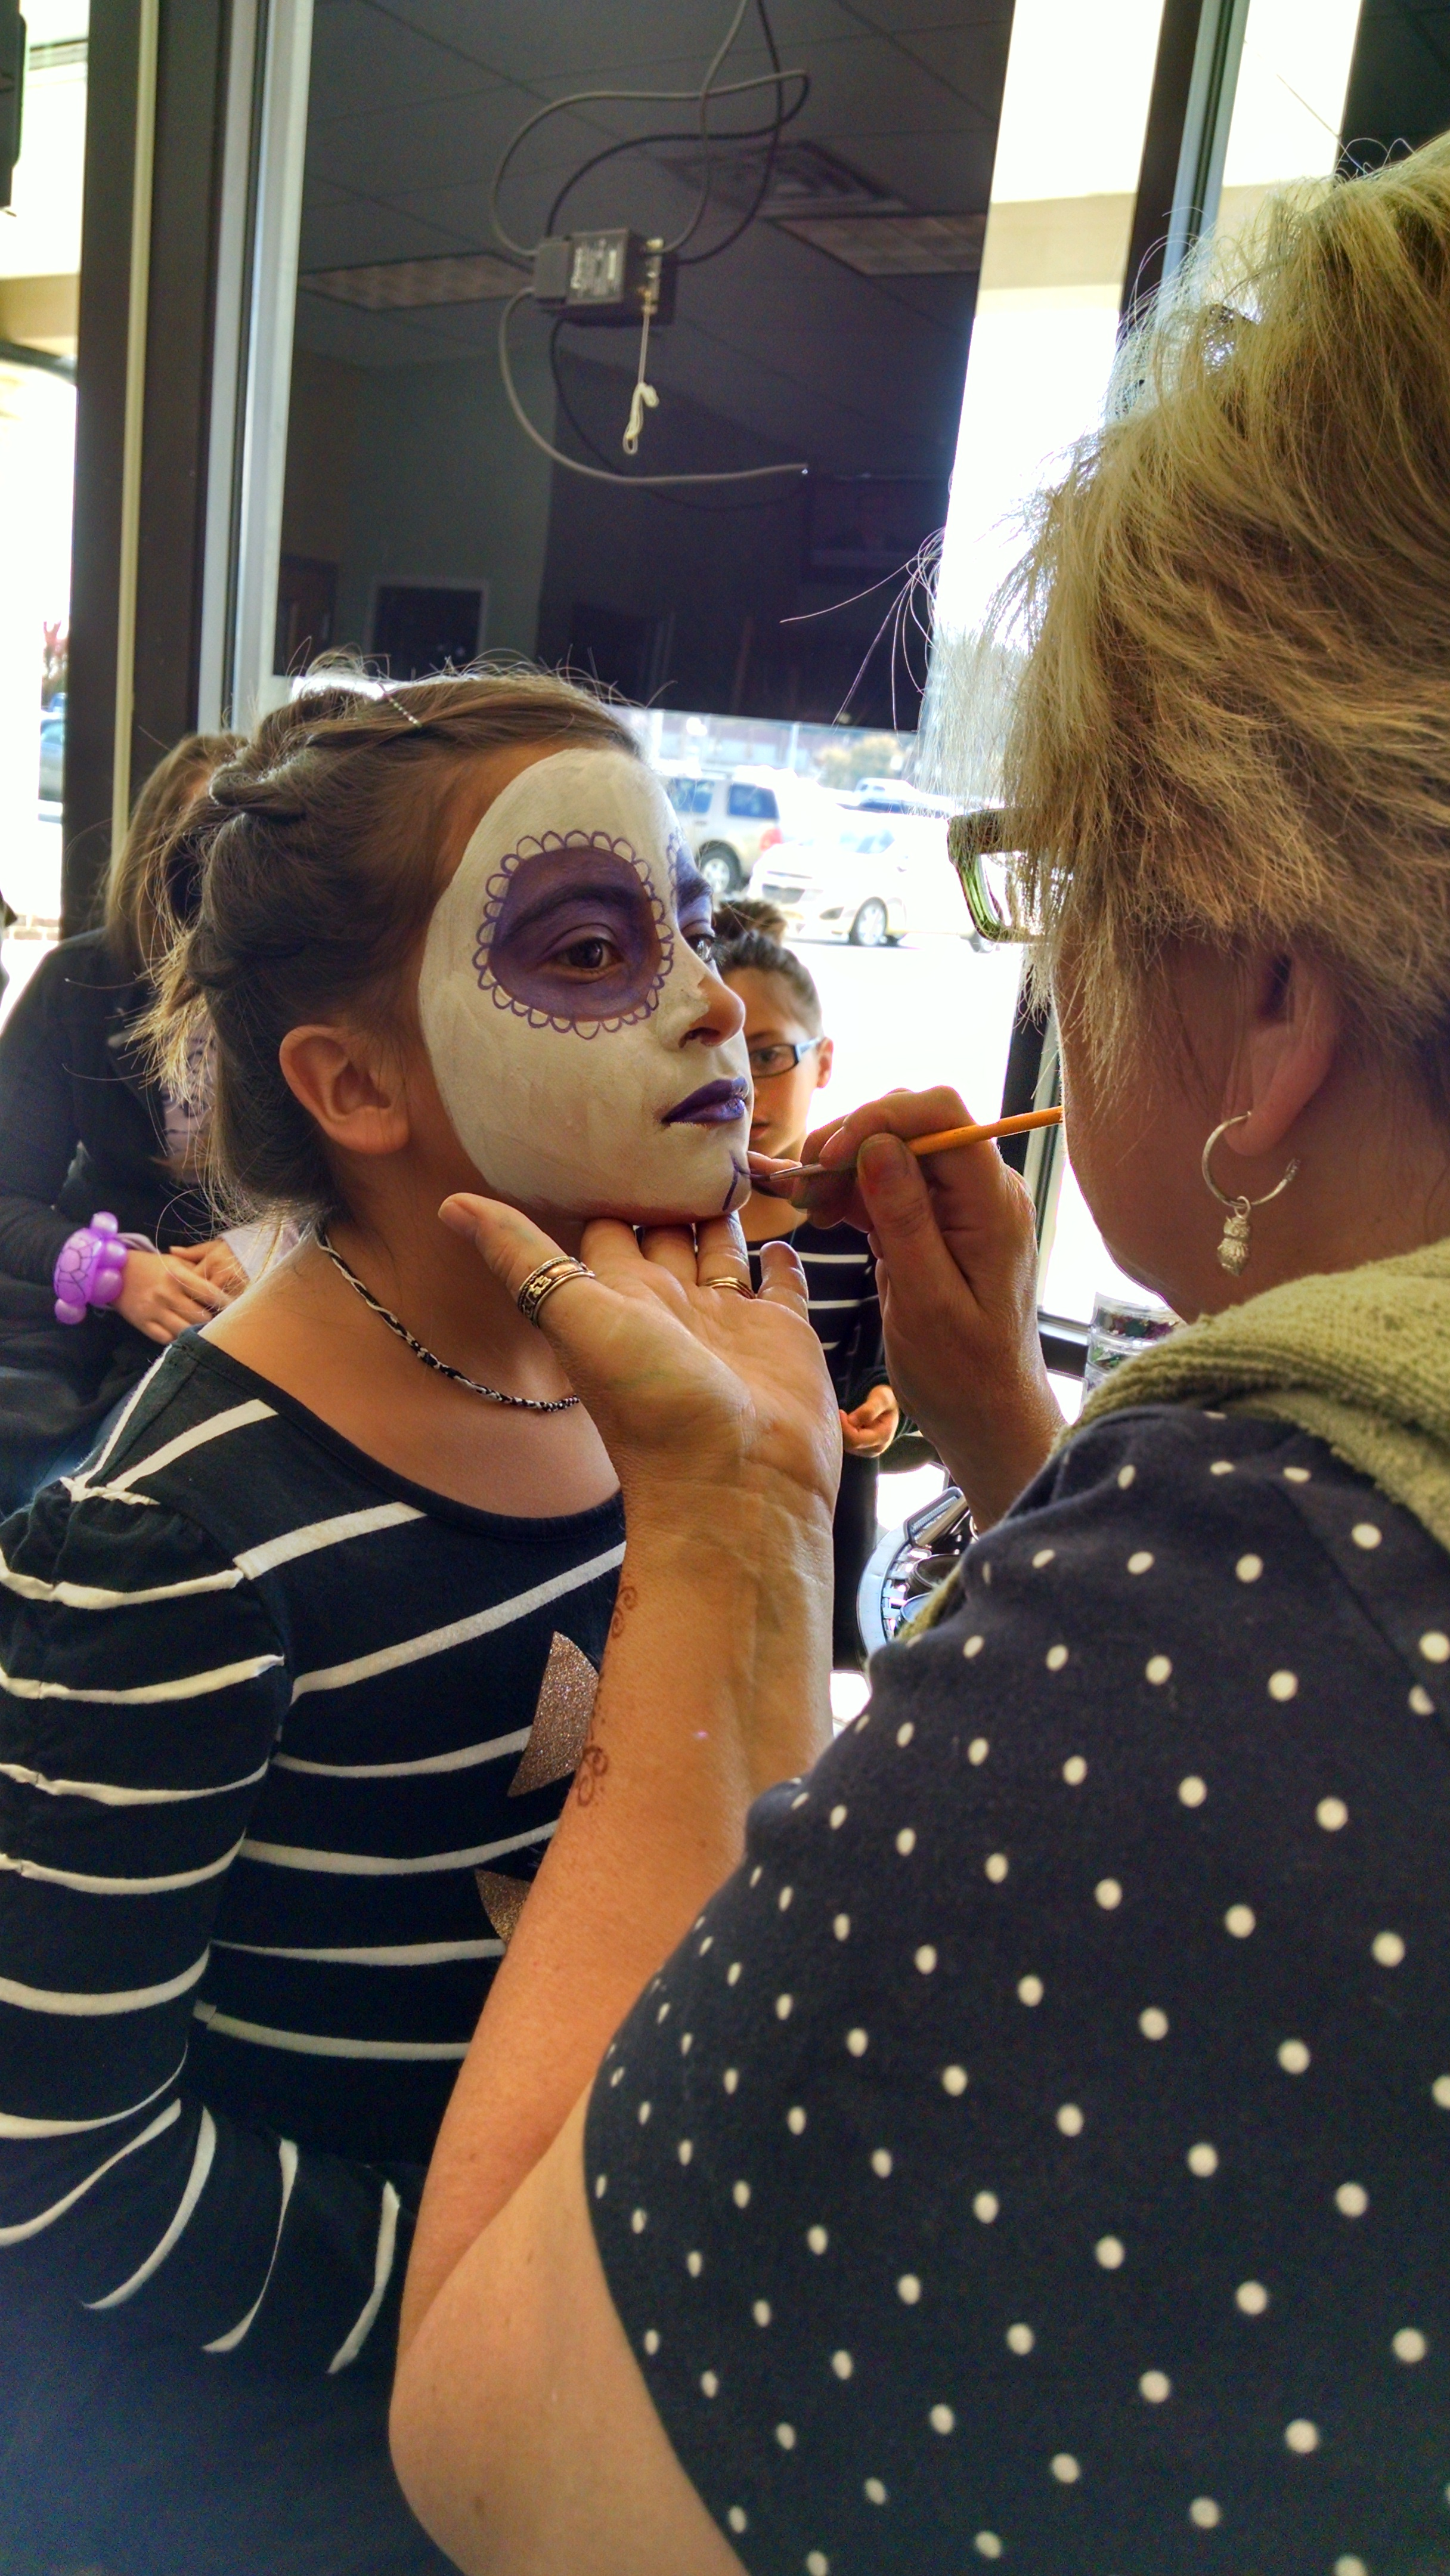 Melanie Thoman getting her face painted by Donna Grentz from Mimzy's Face Painting